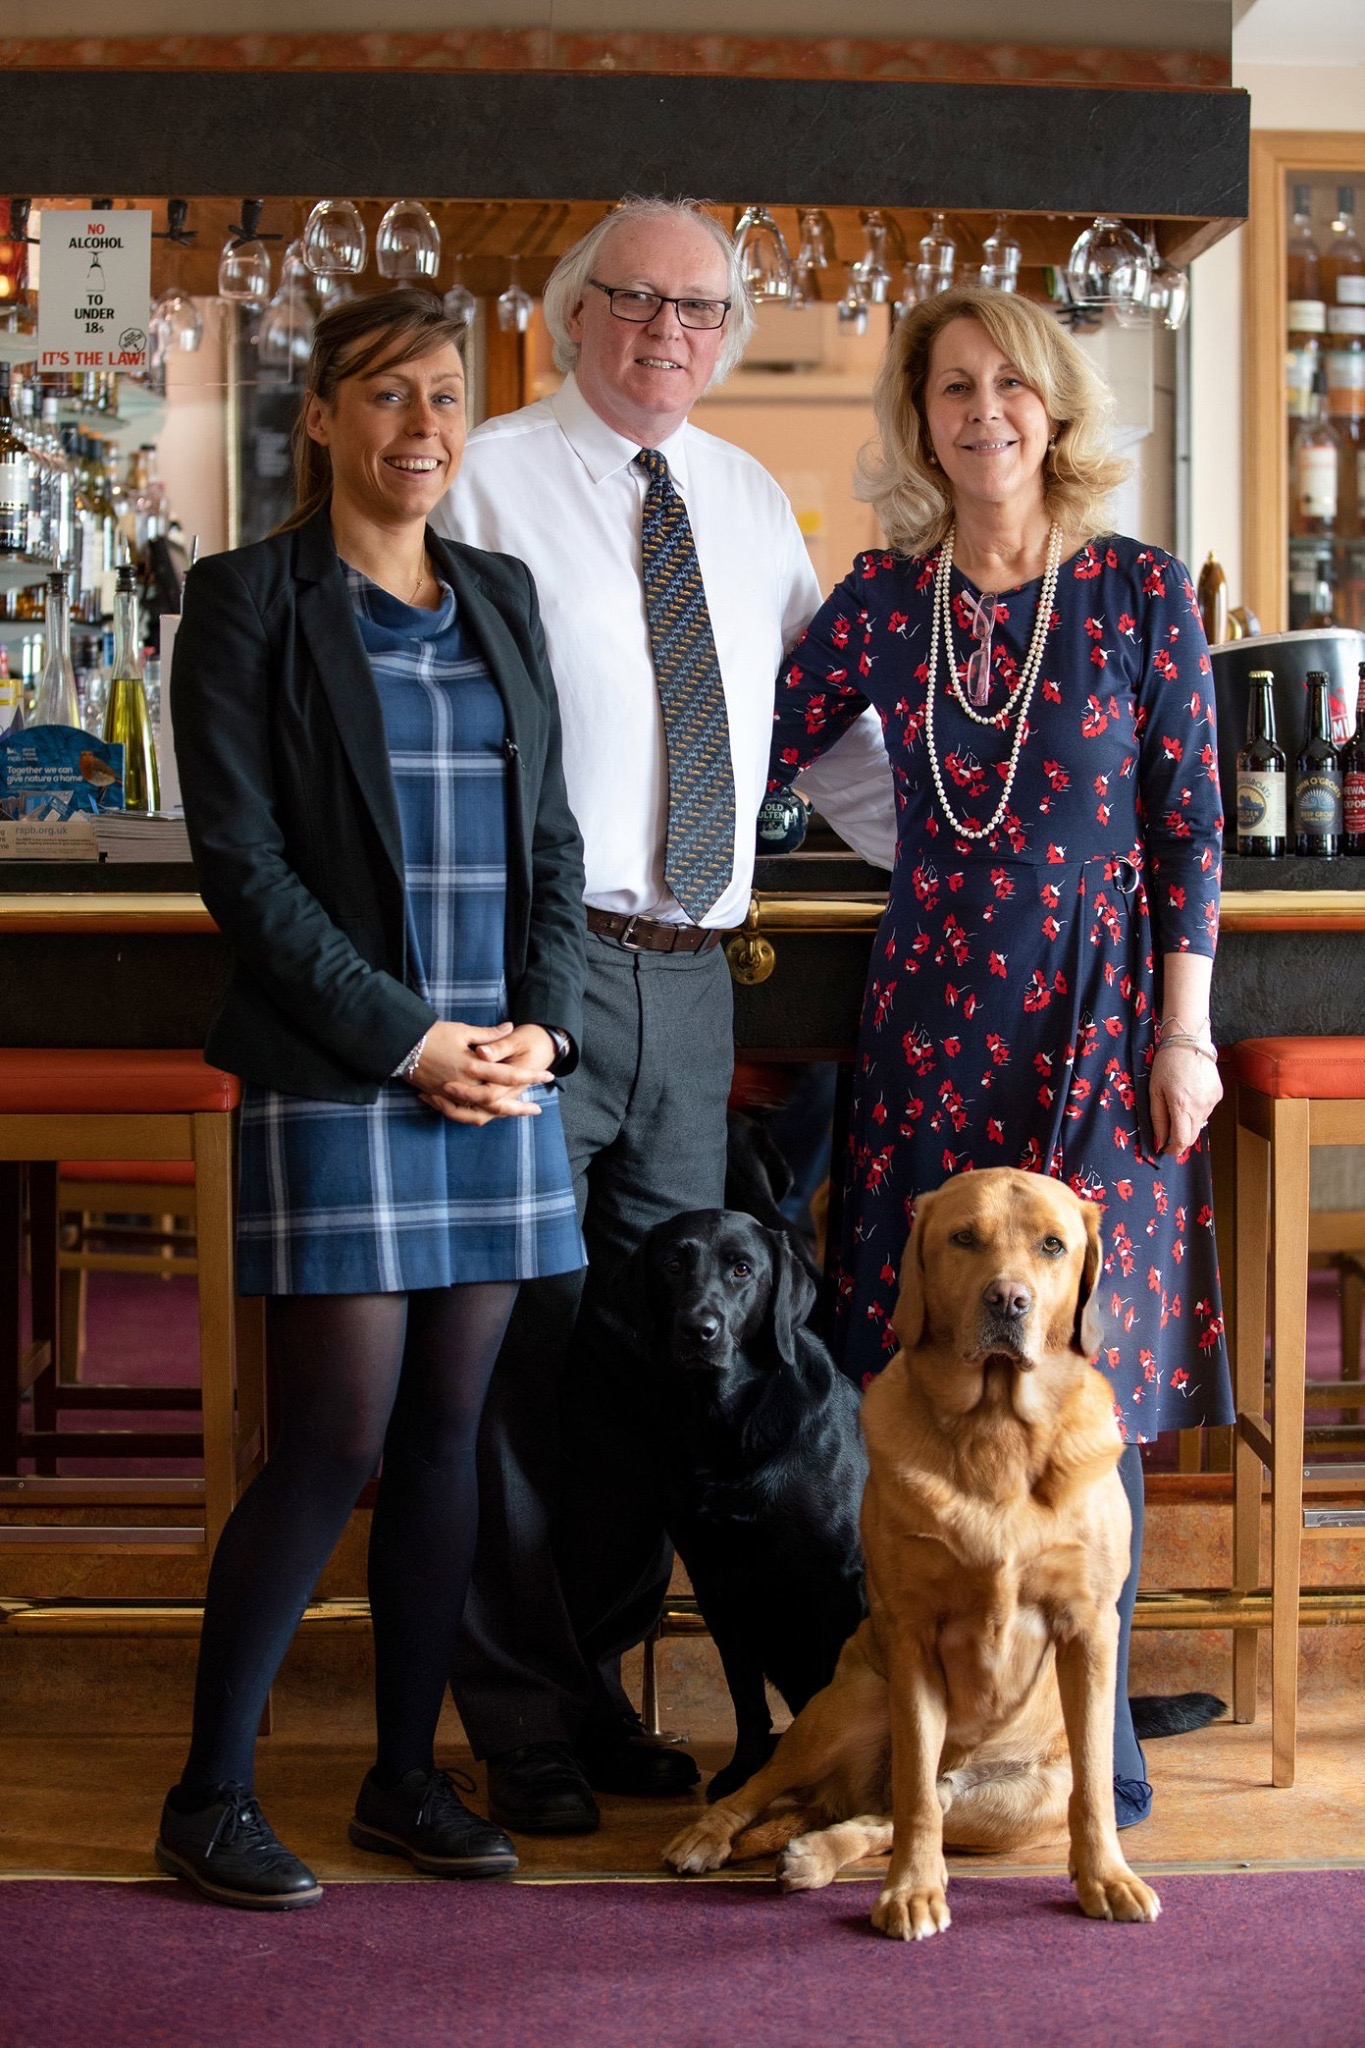 The Lamont family at Mackays Hotel (L-R): Jennifer Lamont, Murray Lamont, Ellie Lamont, plus the Lamont's dogs Bria (black) Max (red).- Business News Scotland